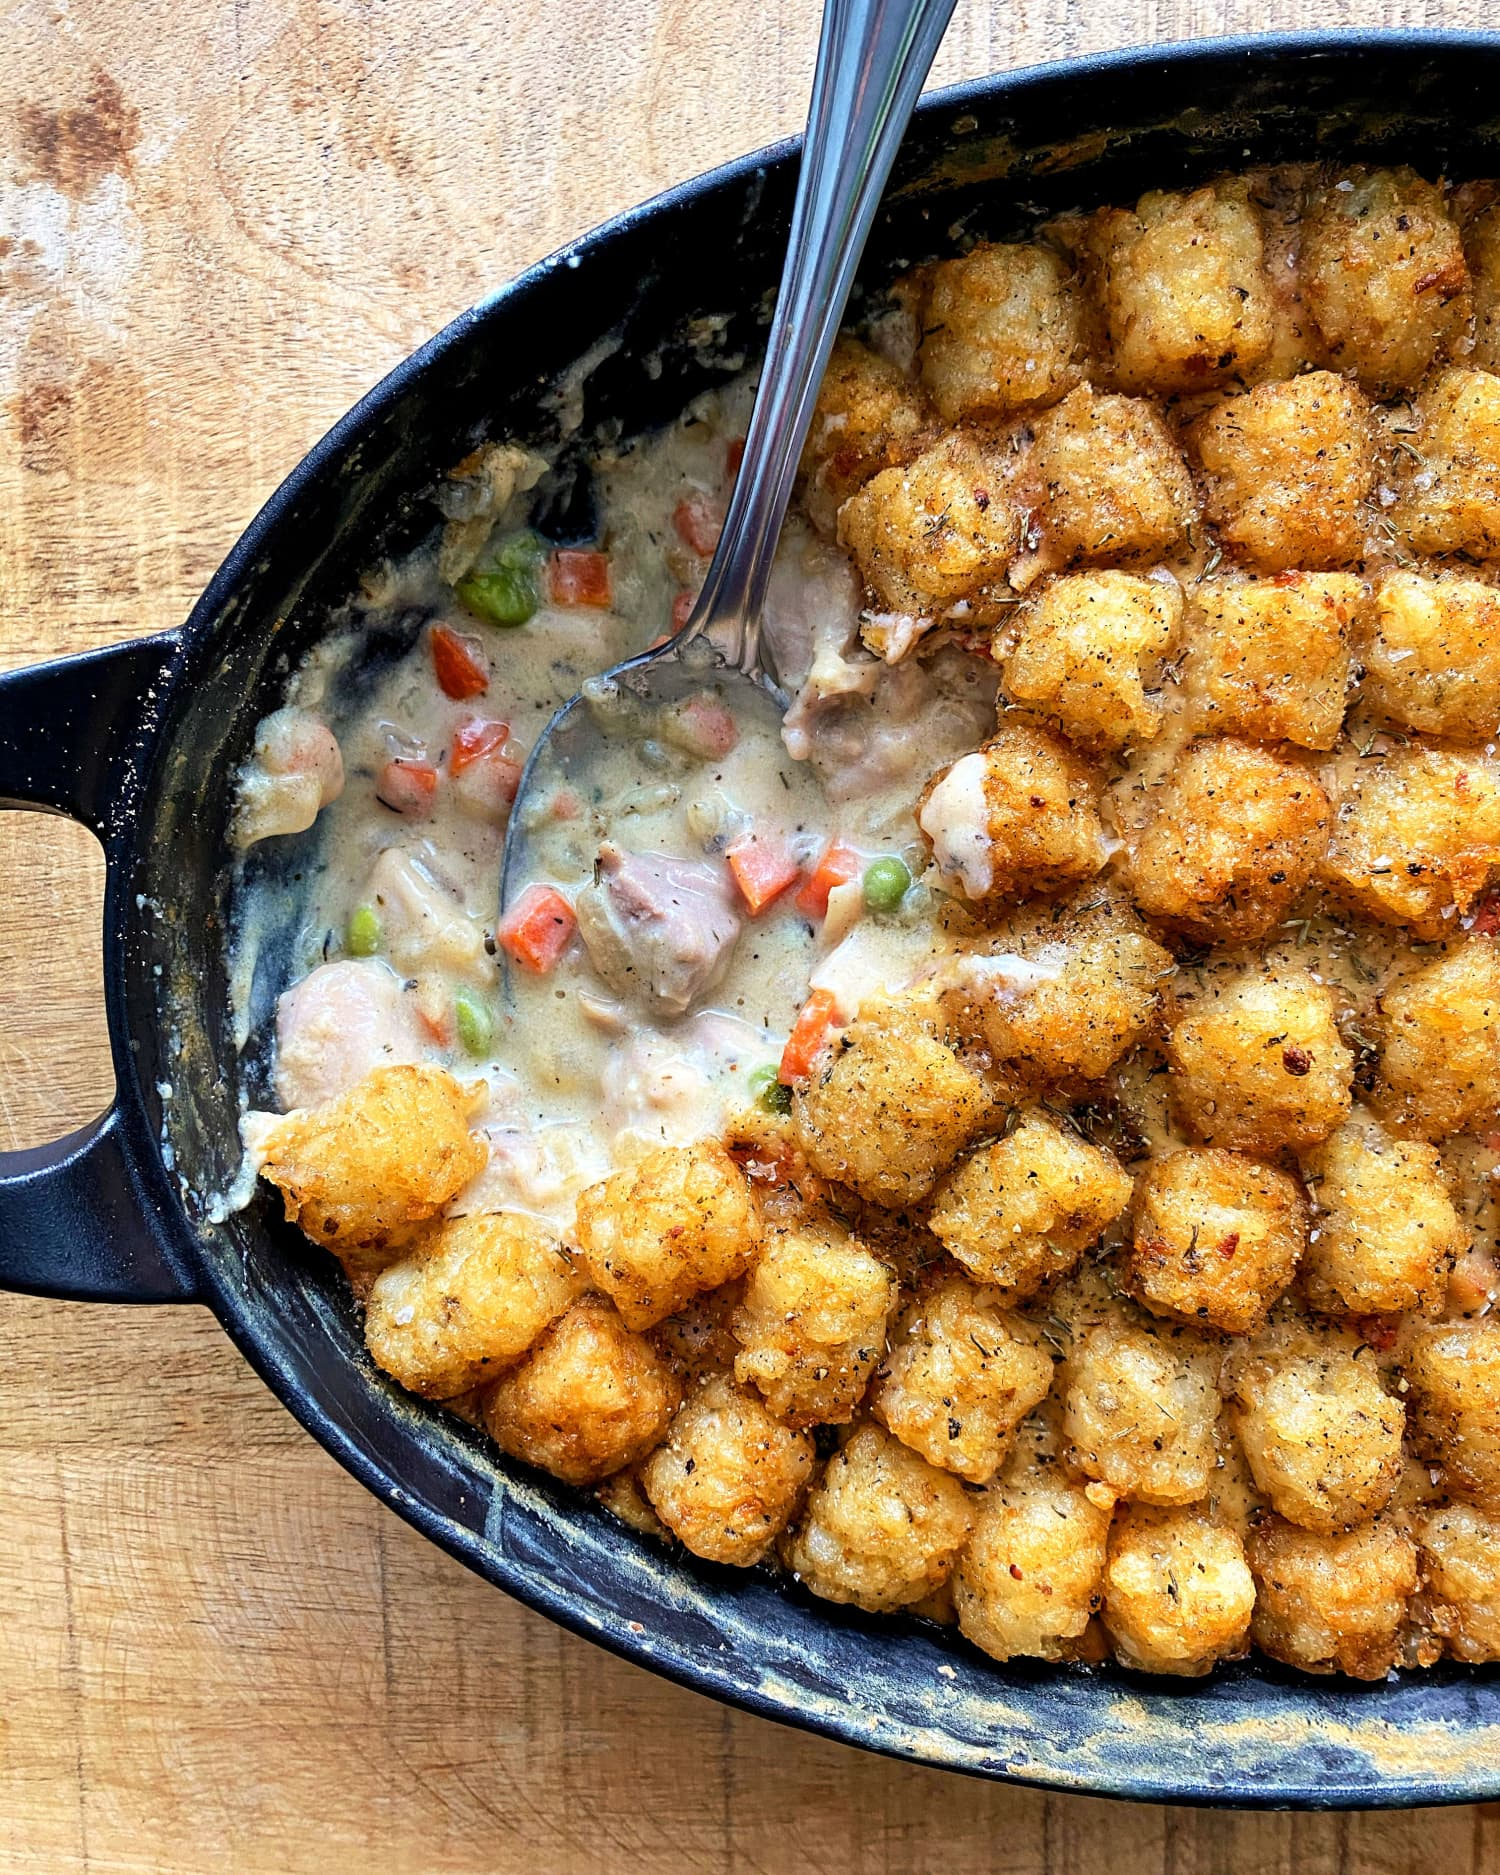 Molly Yeh's Chicken Pot Tot Hot Dish Is My Definition of Comfort Food